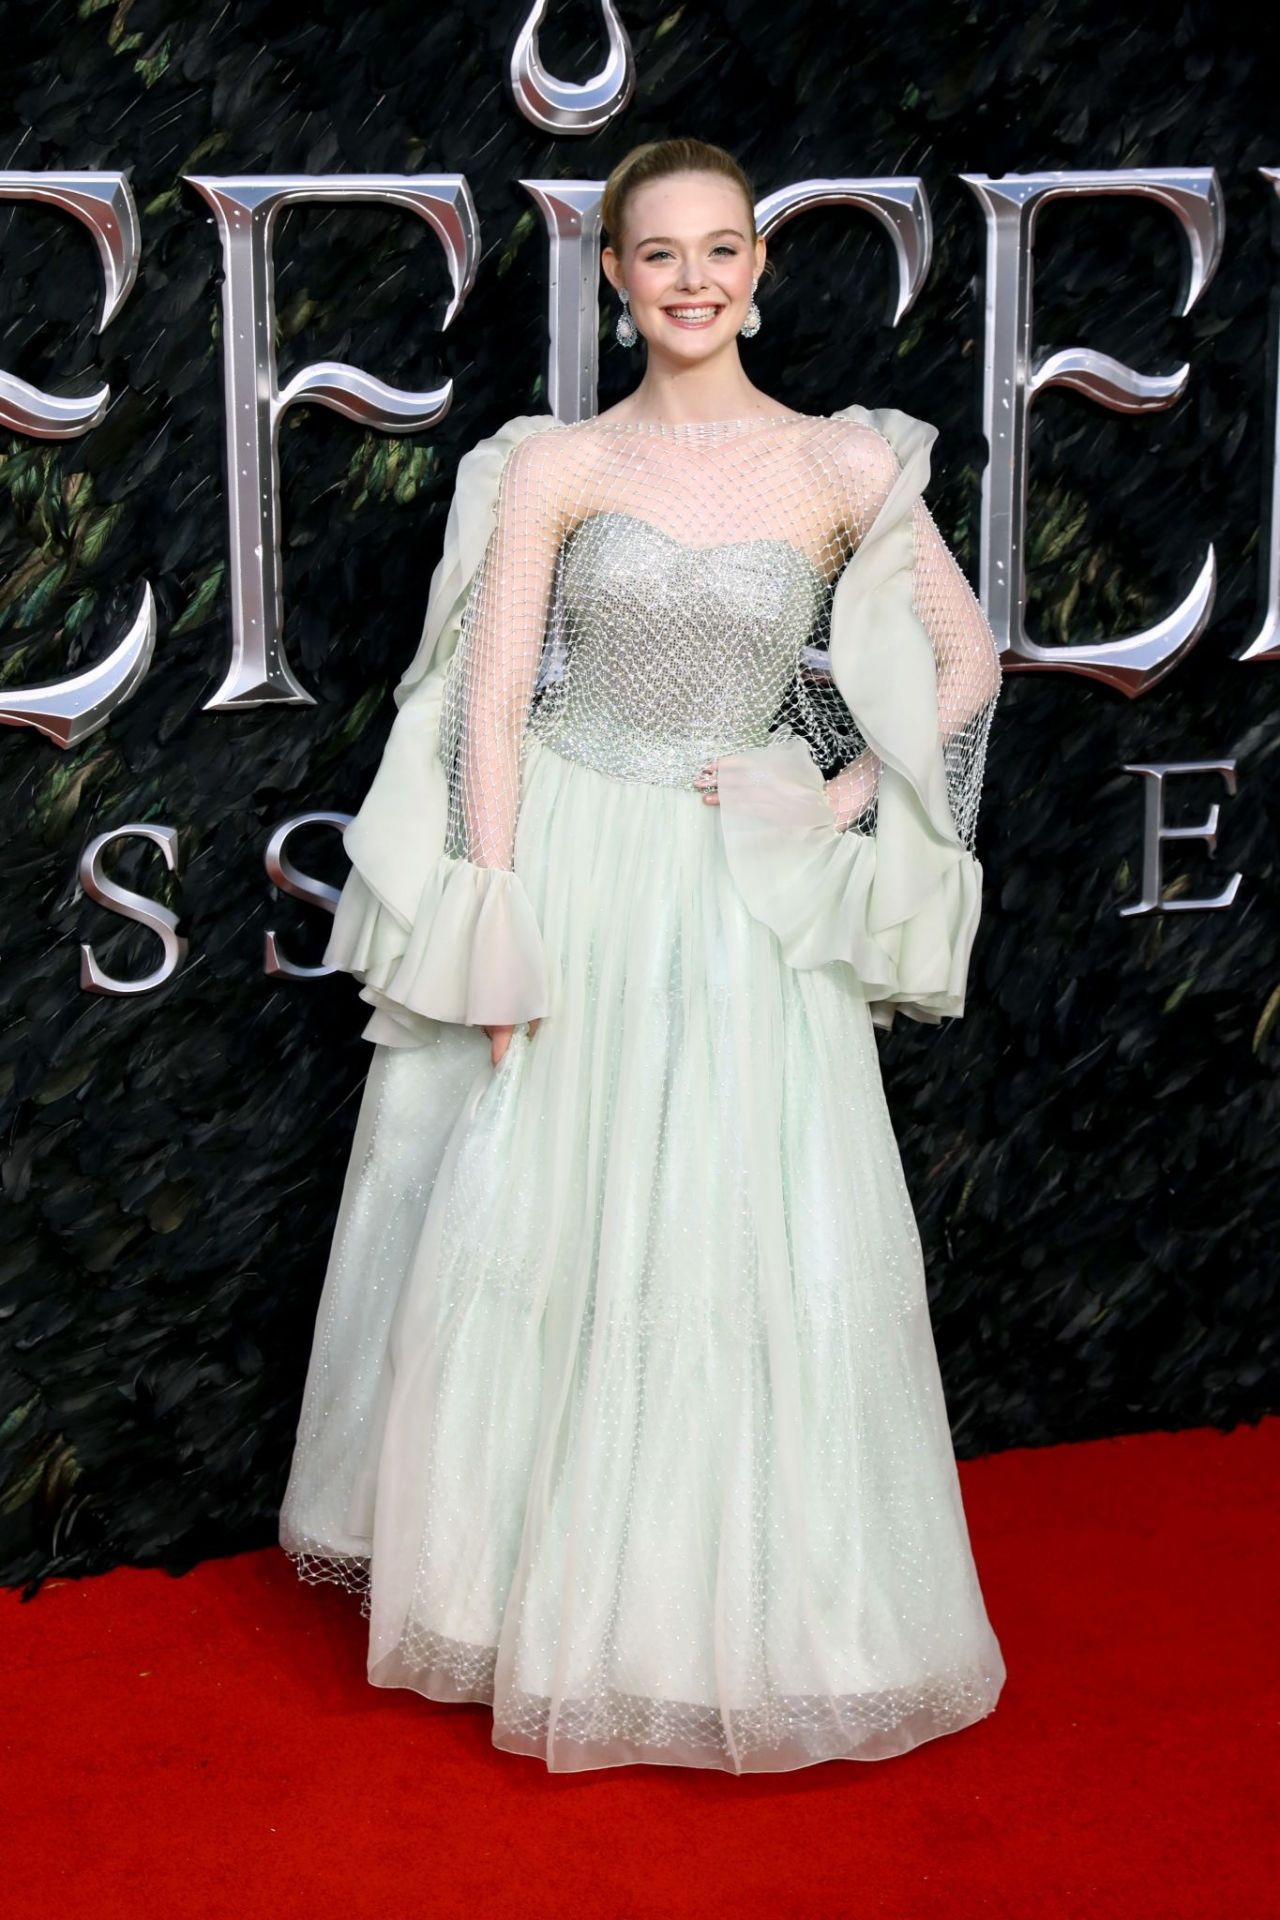 Elle Fanning Maleficent Mistress Of Evil Premiere In London